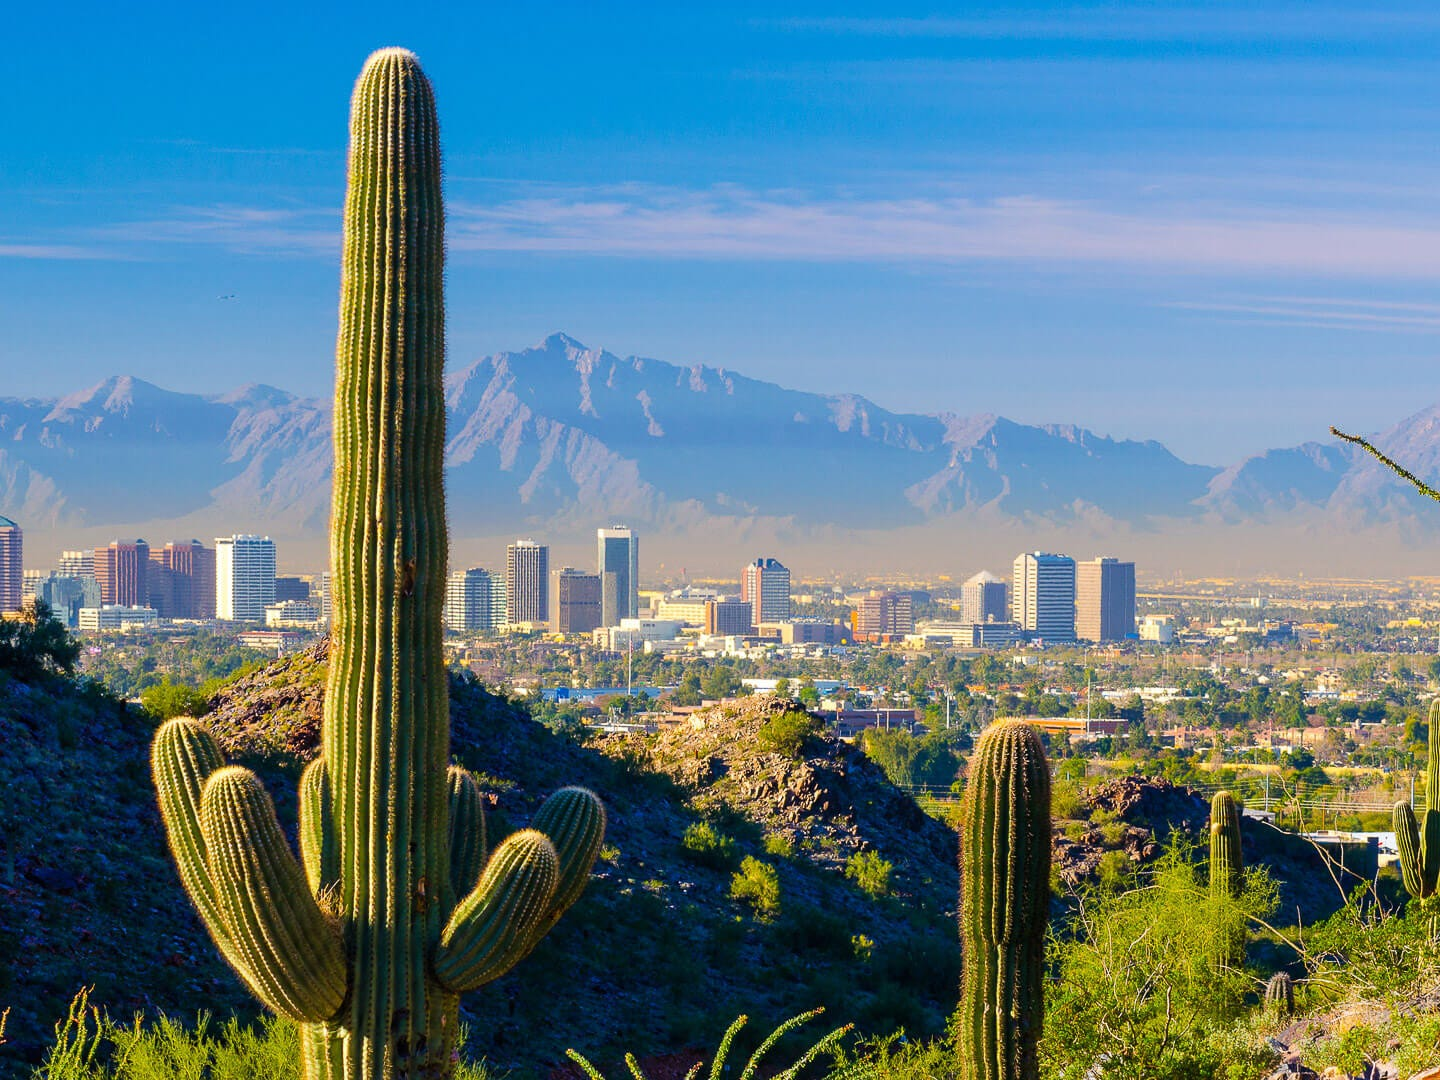 No. 13: Phoenix. Thanksgiving trip cost: $1,160.50. Christmas trip cost: $959. It's relatively affordable to travel to Phoenix over Christmas. Round-trip flights cost an average of $257 — tied with San Francisco for the third-lowest average flight cost compared to other cities in this study. Make your visit to Phoenix merry by catching a professional ice skating performance at the Westgate Entertainment District or walking among thousands of lights at the Desert Botanical Garden.